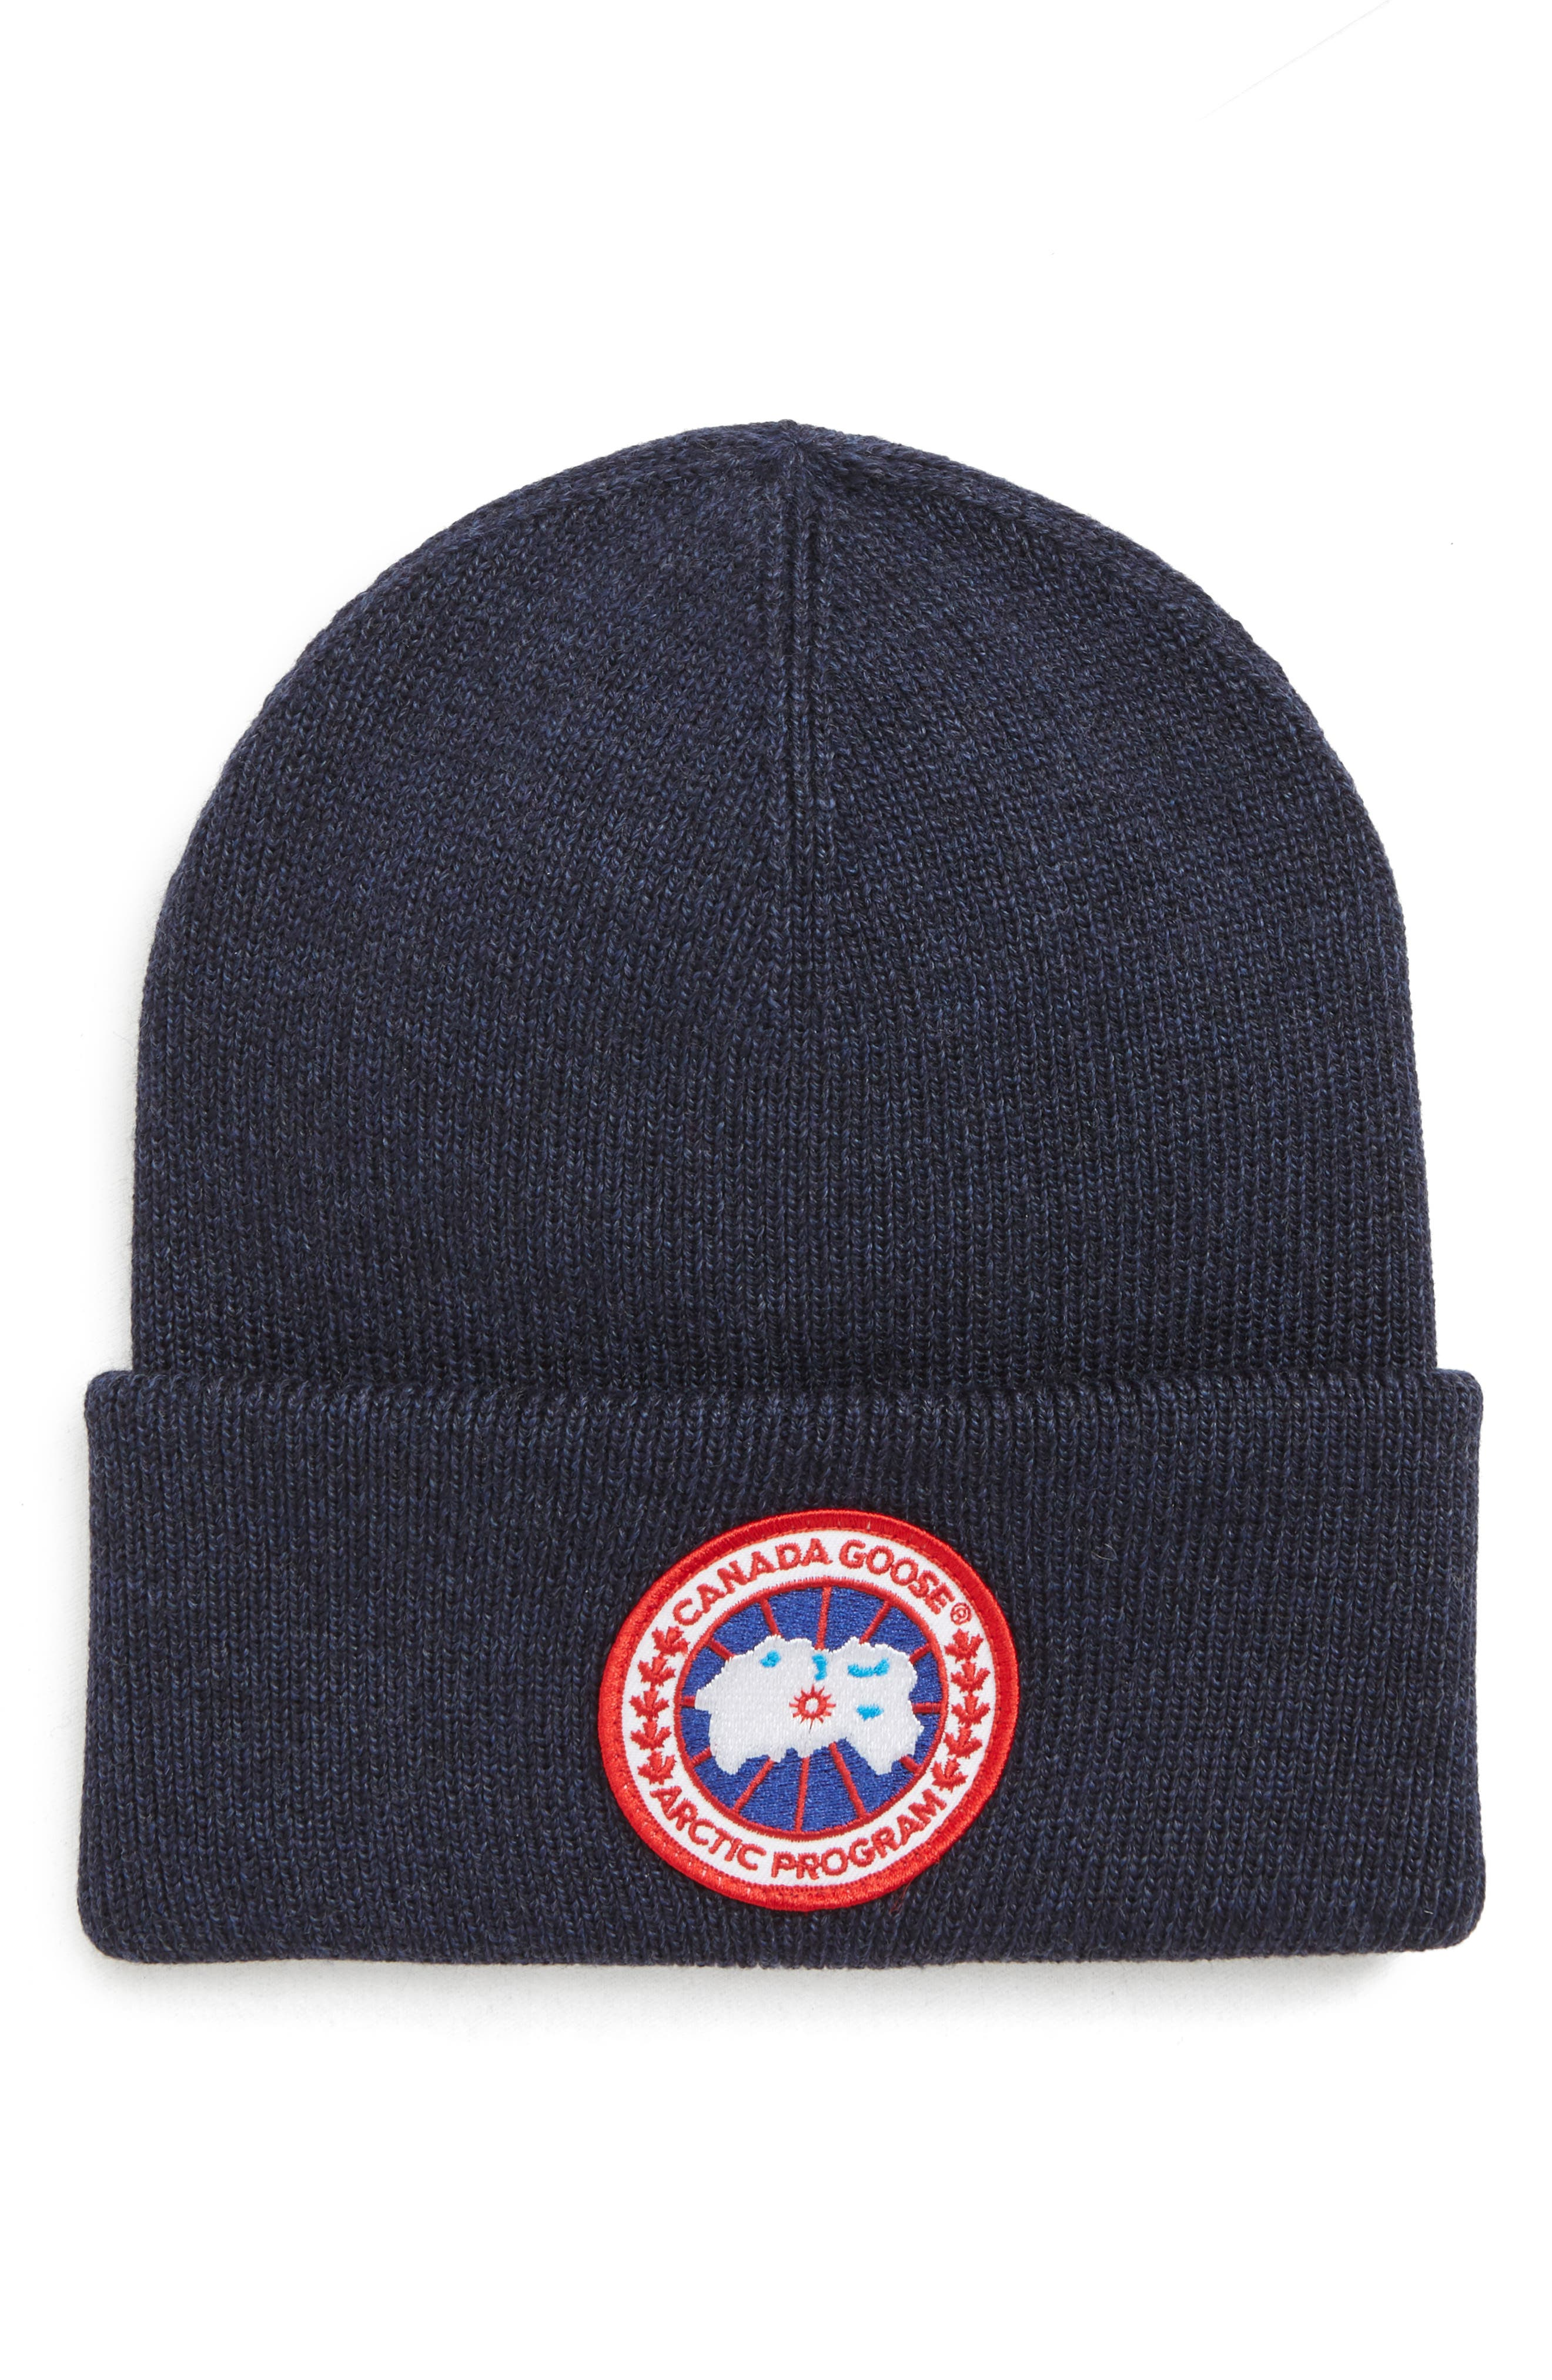 eaa0b8b9aff8a Canada Goose Hats for Women